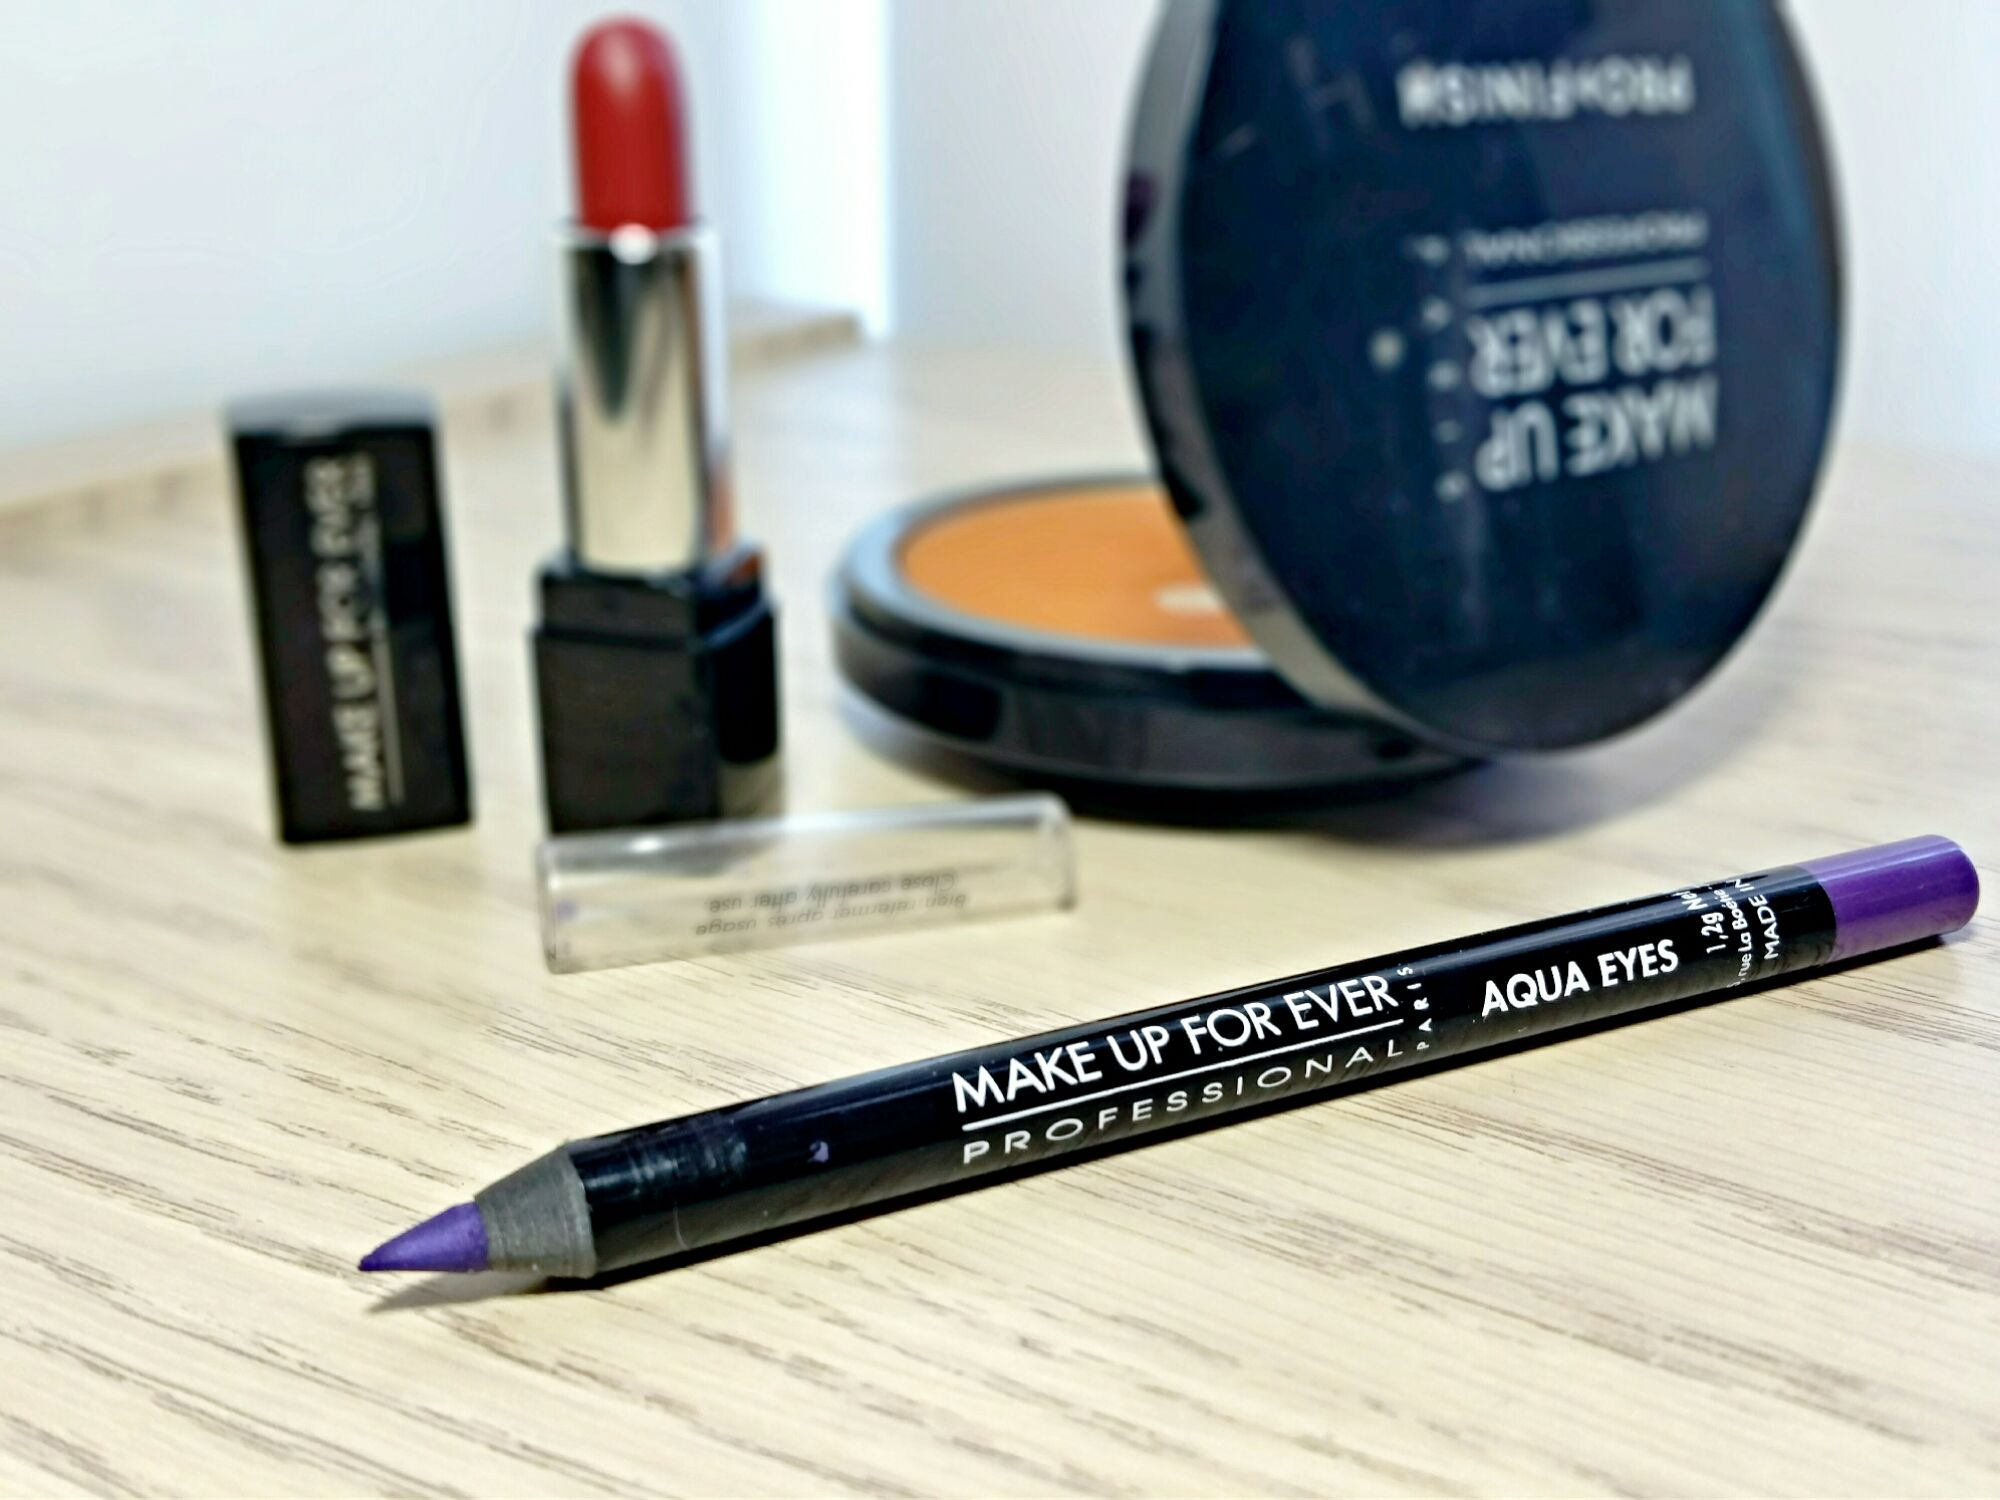 Wipe Away Waterproof Woes with Make Up Forever Mascara and